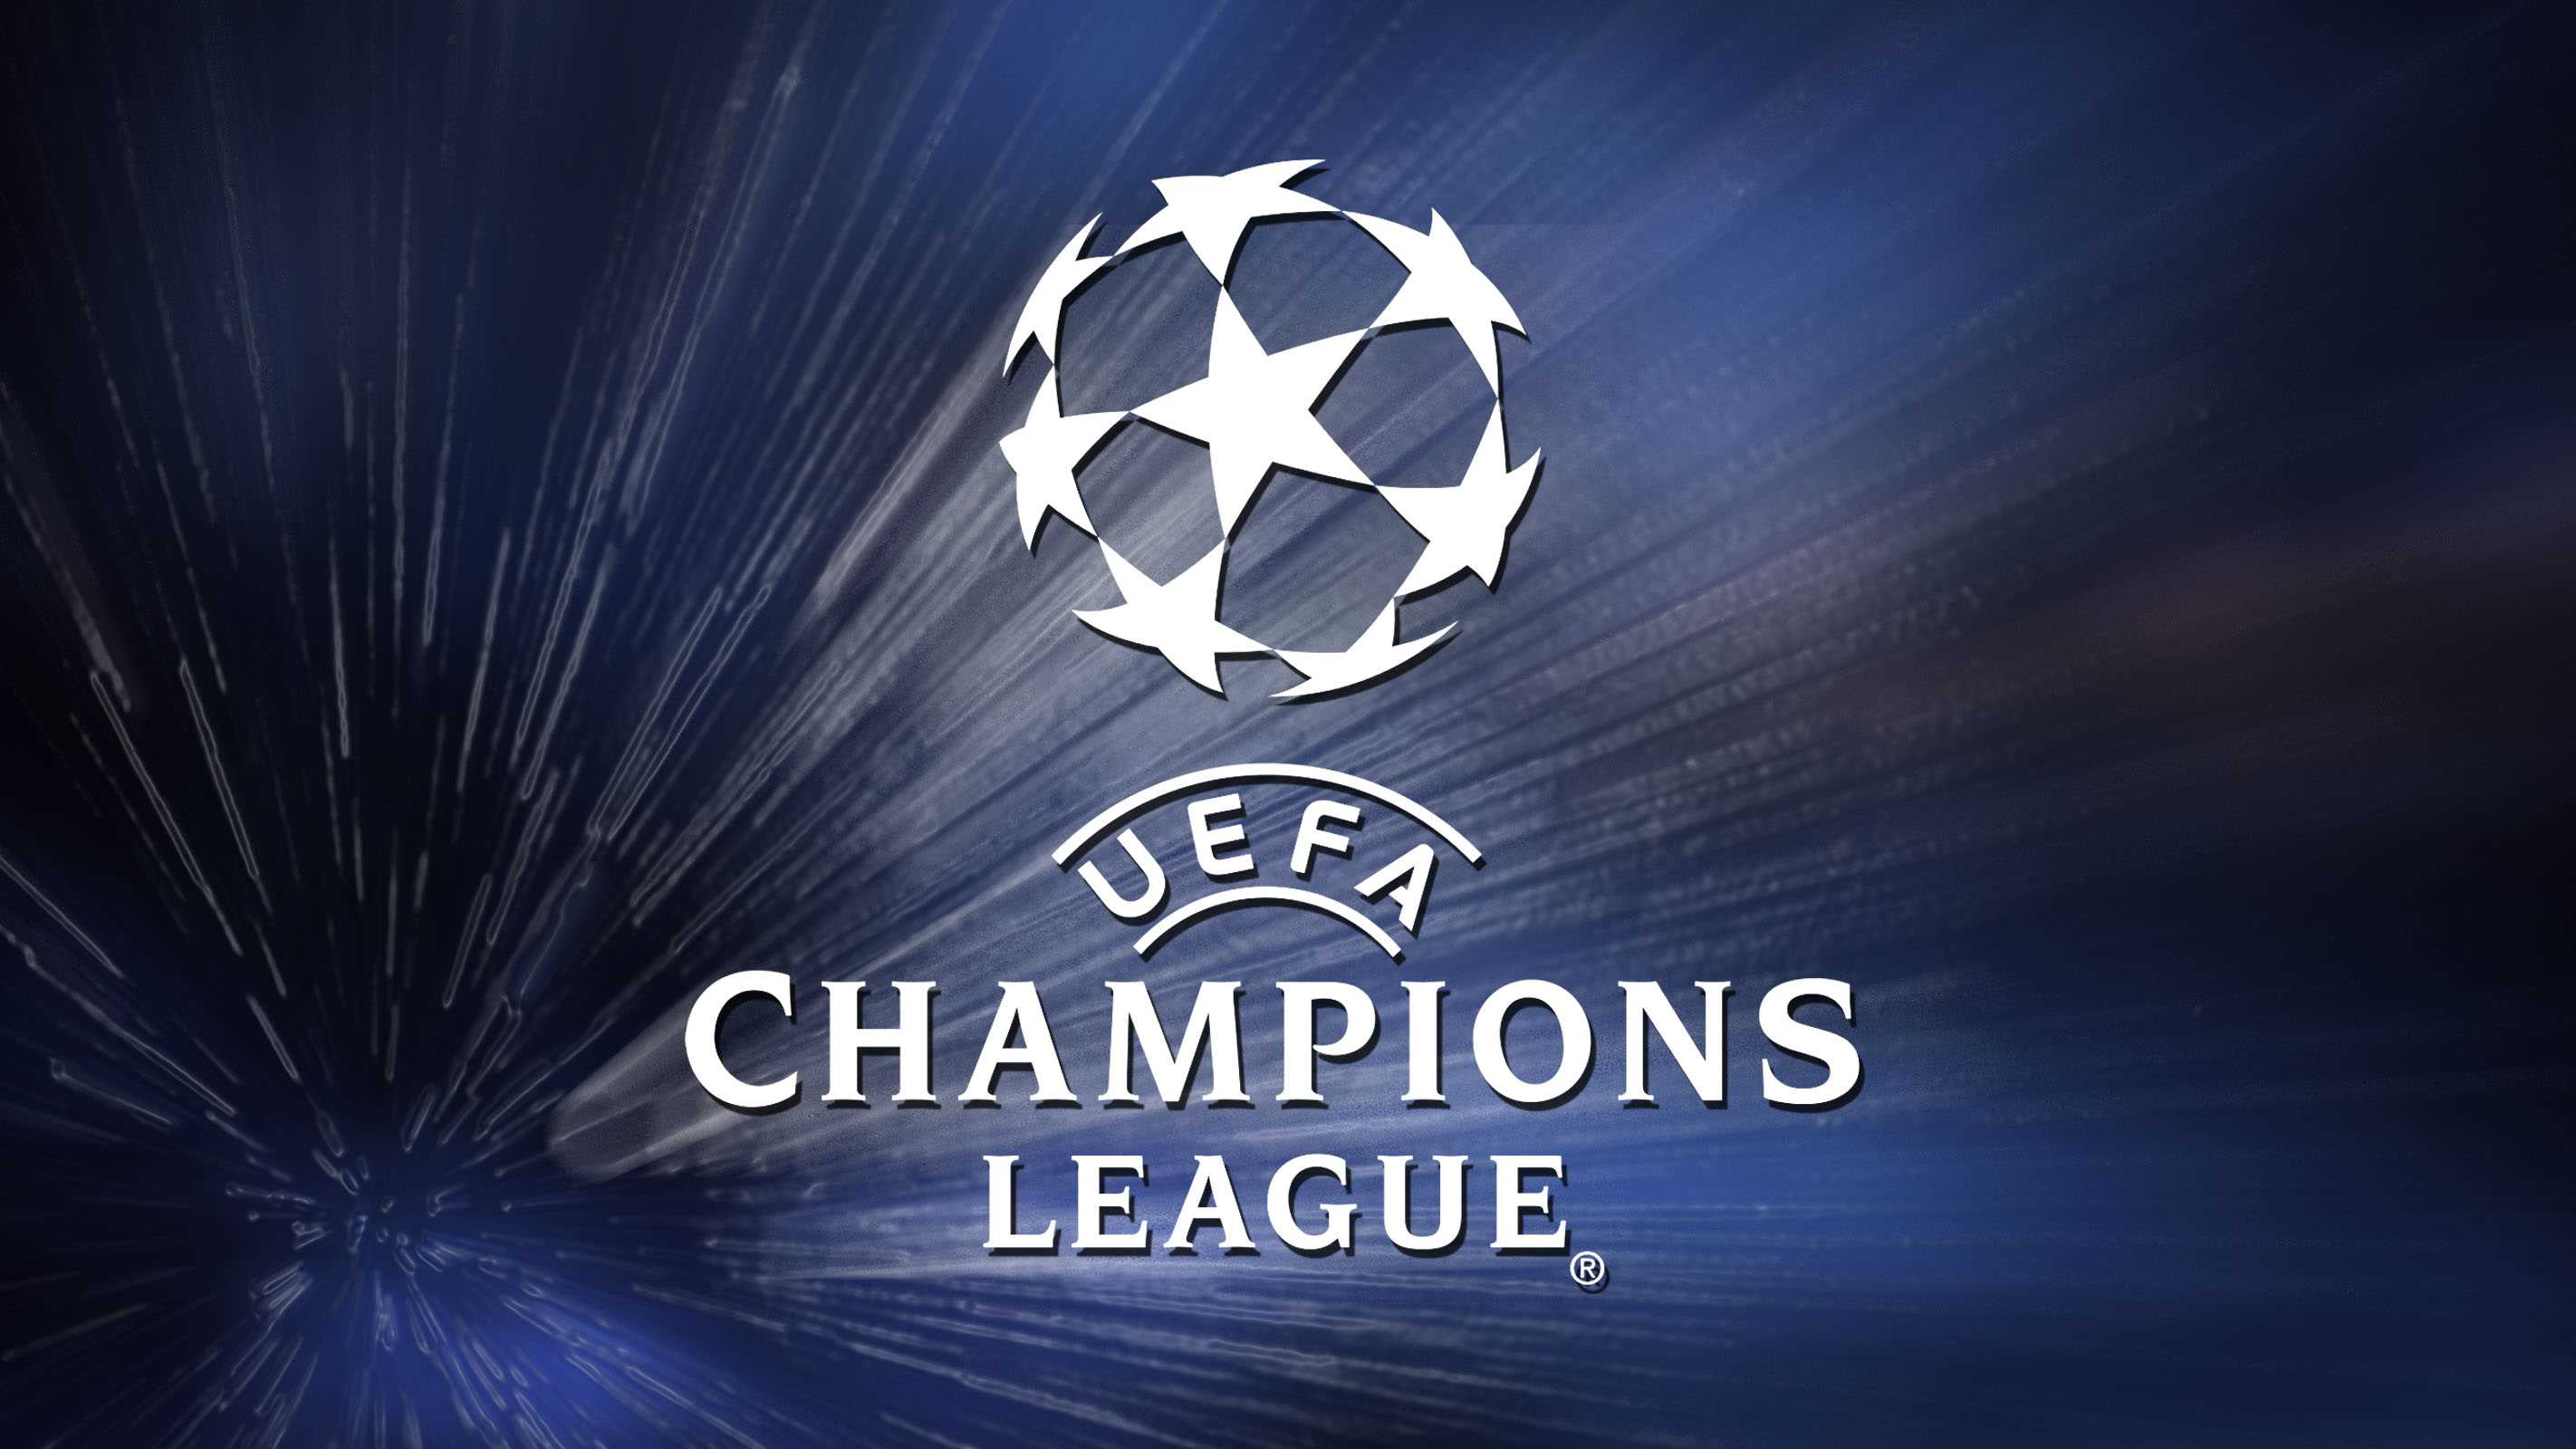 championes league